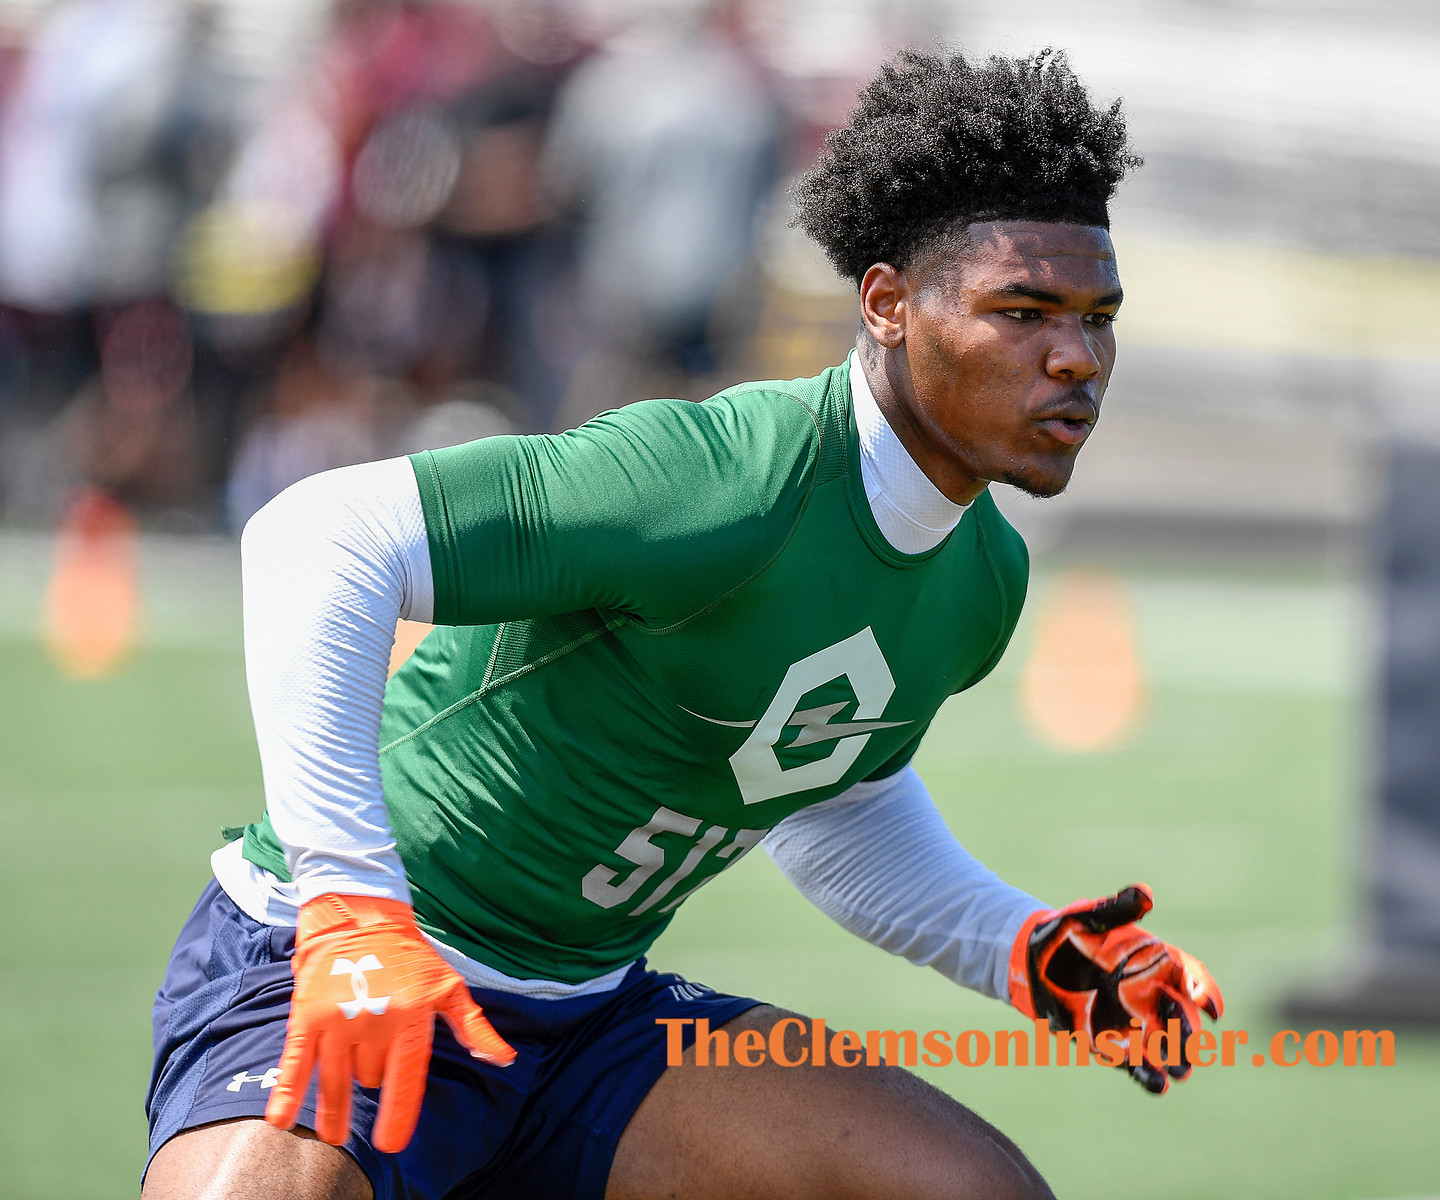 Linebacker Trenton Simpson at The Opening Regional Charlotte Sunday, April 28, 2019. Bart Boatwright/The Clemson Insider